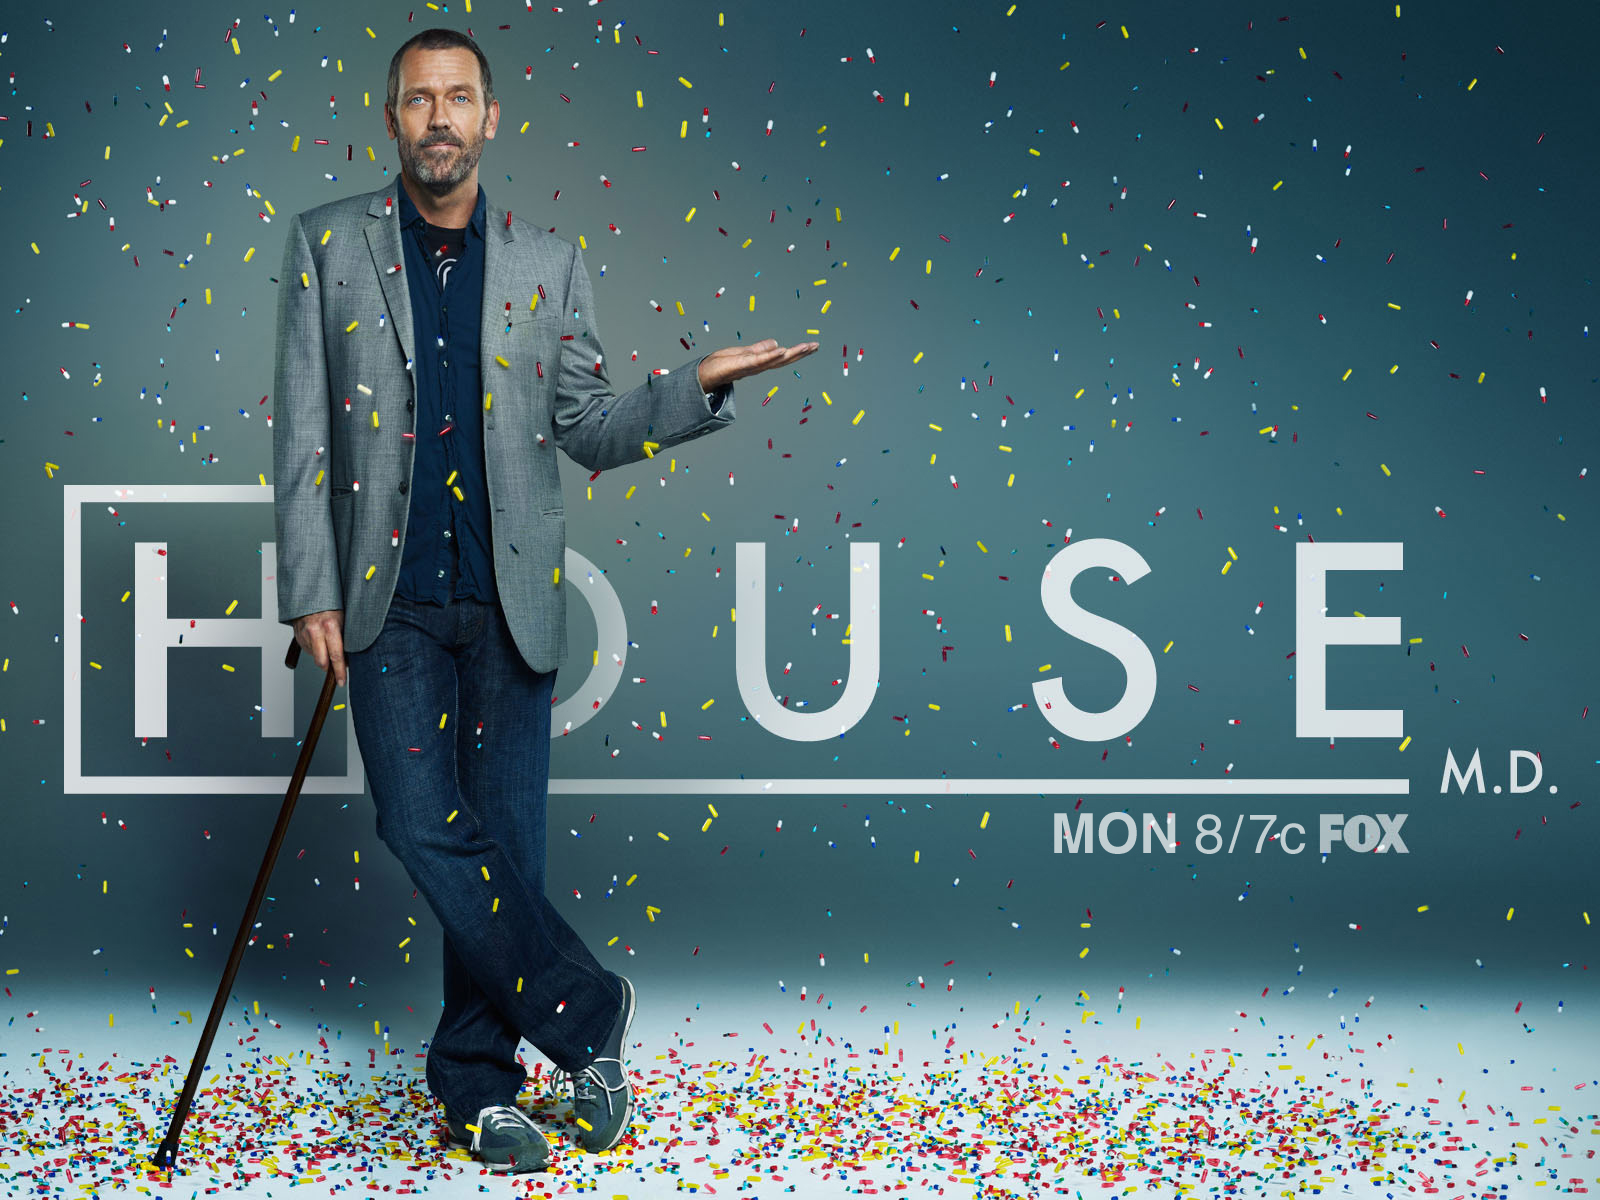 House Wallpaper Dr House wallpaper in the